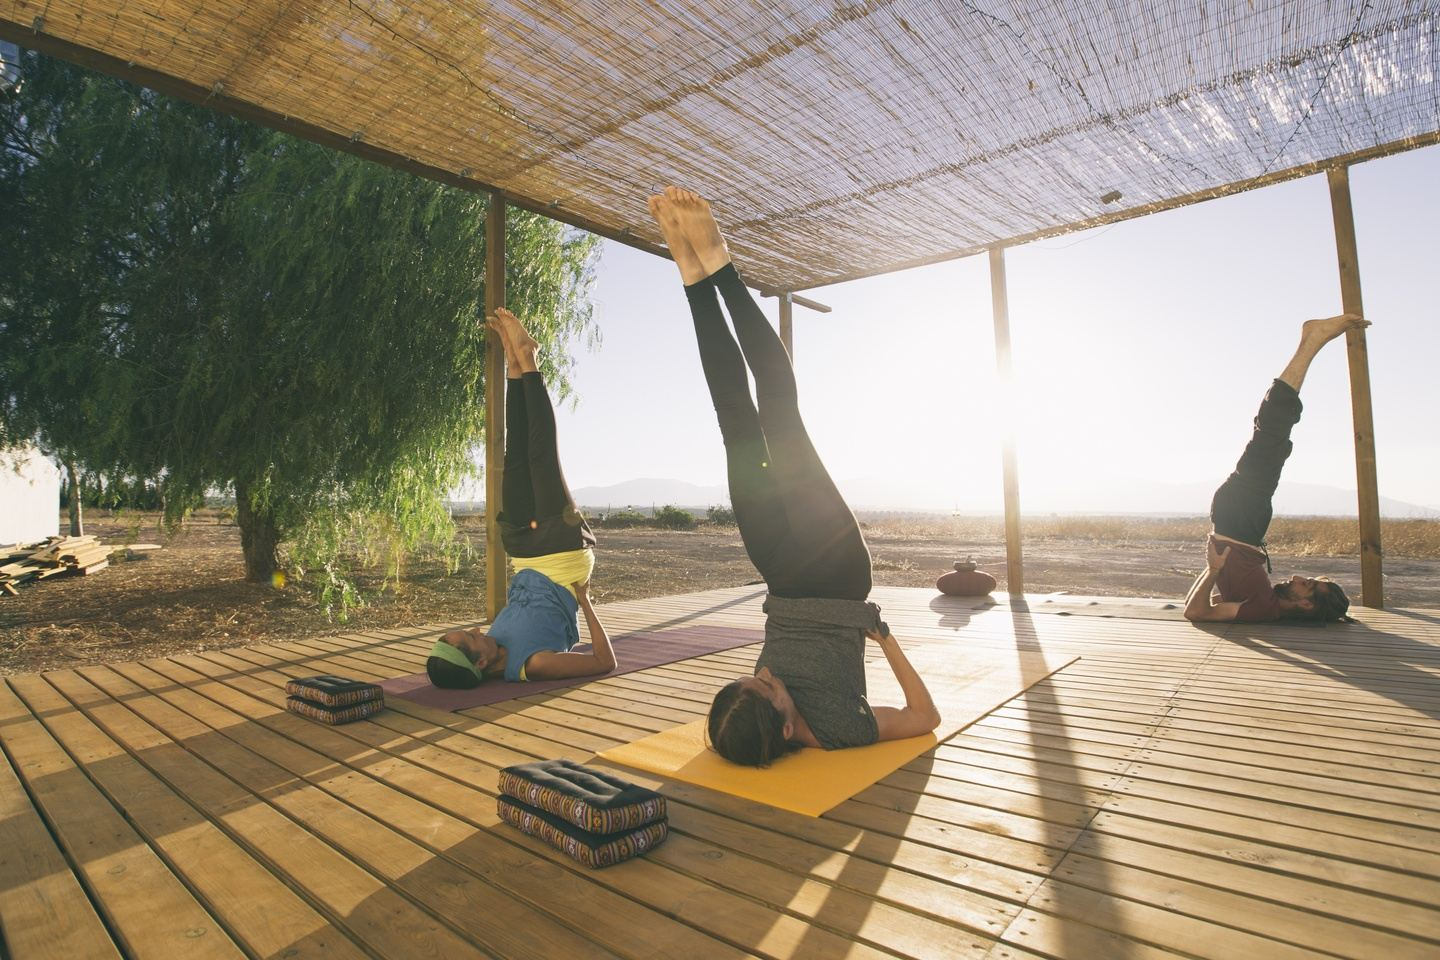 All inclusive 7 nights Meditation and Yoga Retreat in Spain from May 27th until June 3rd